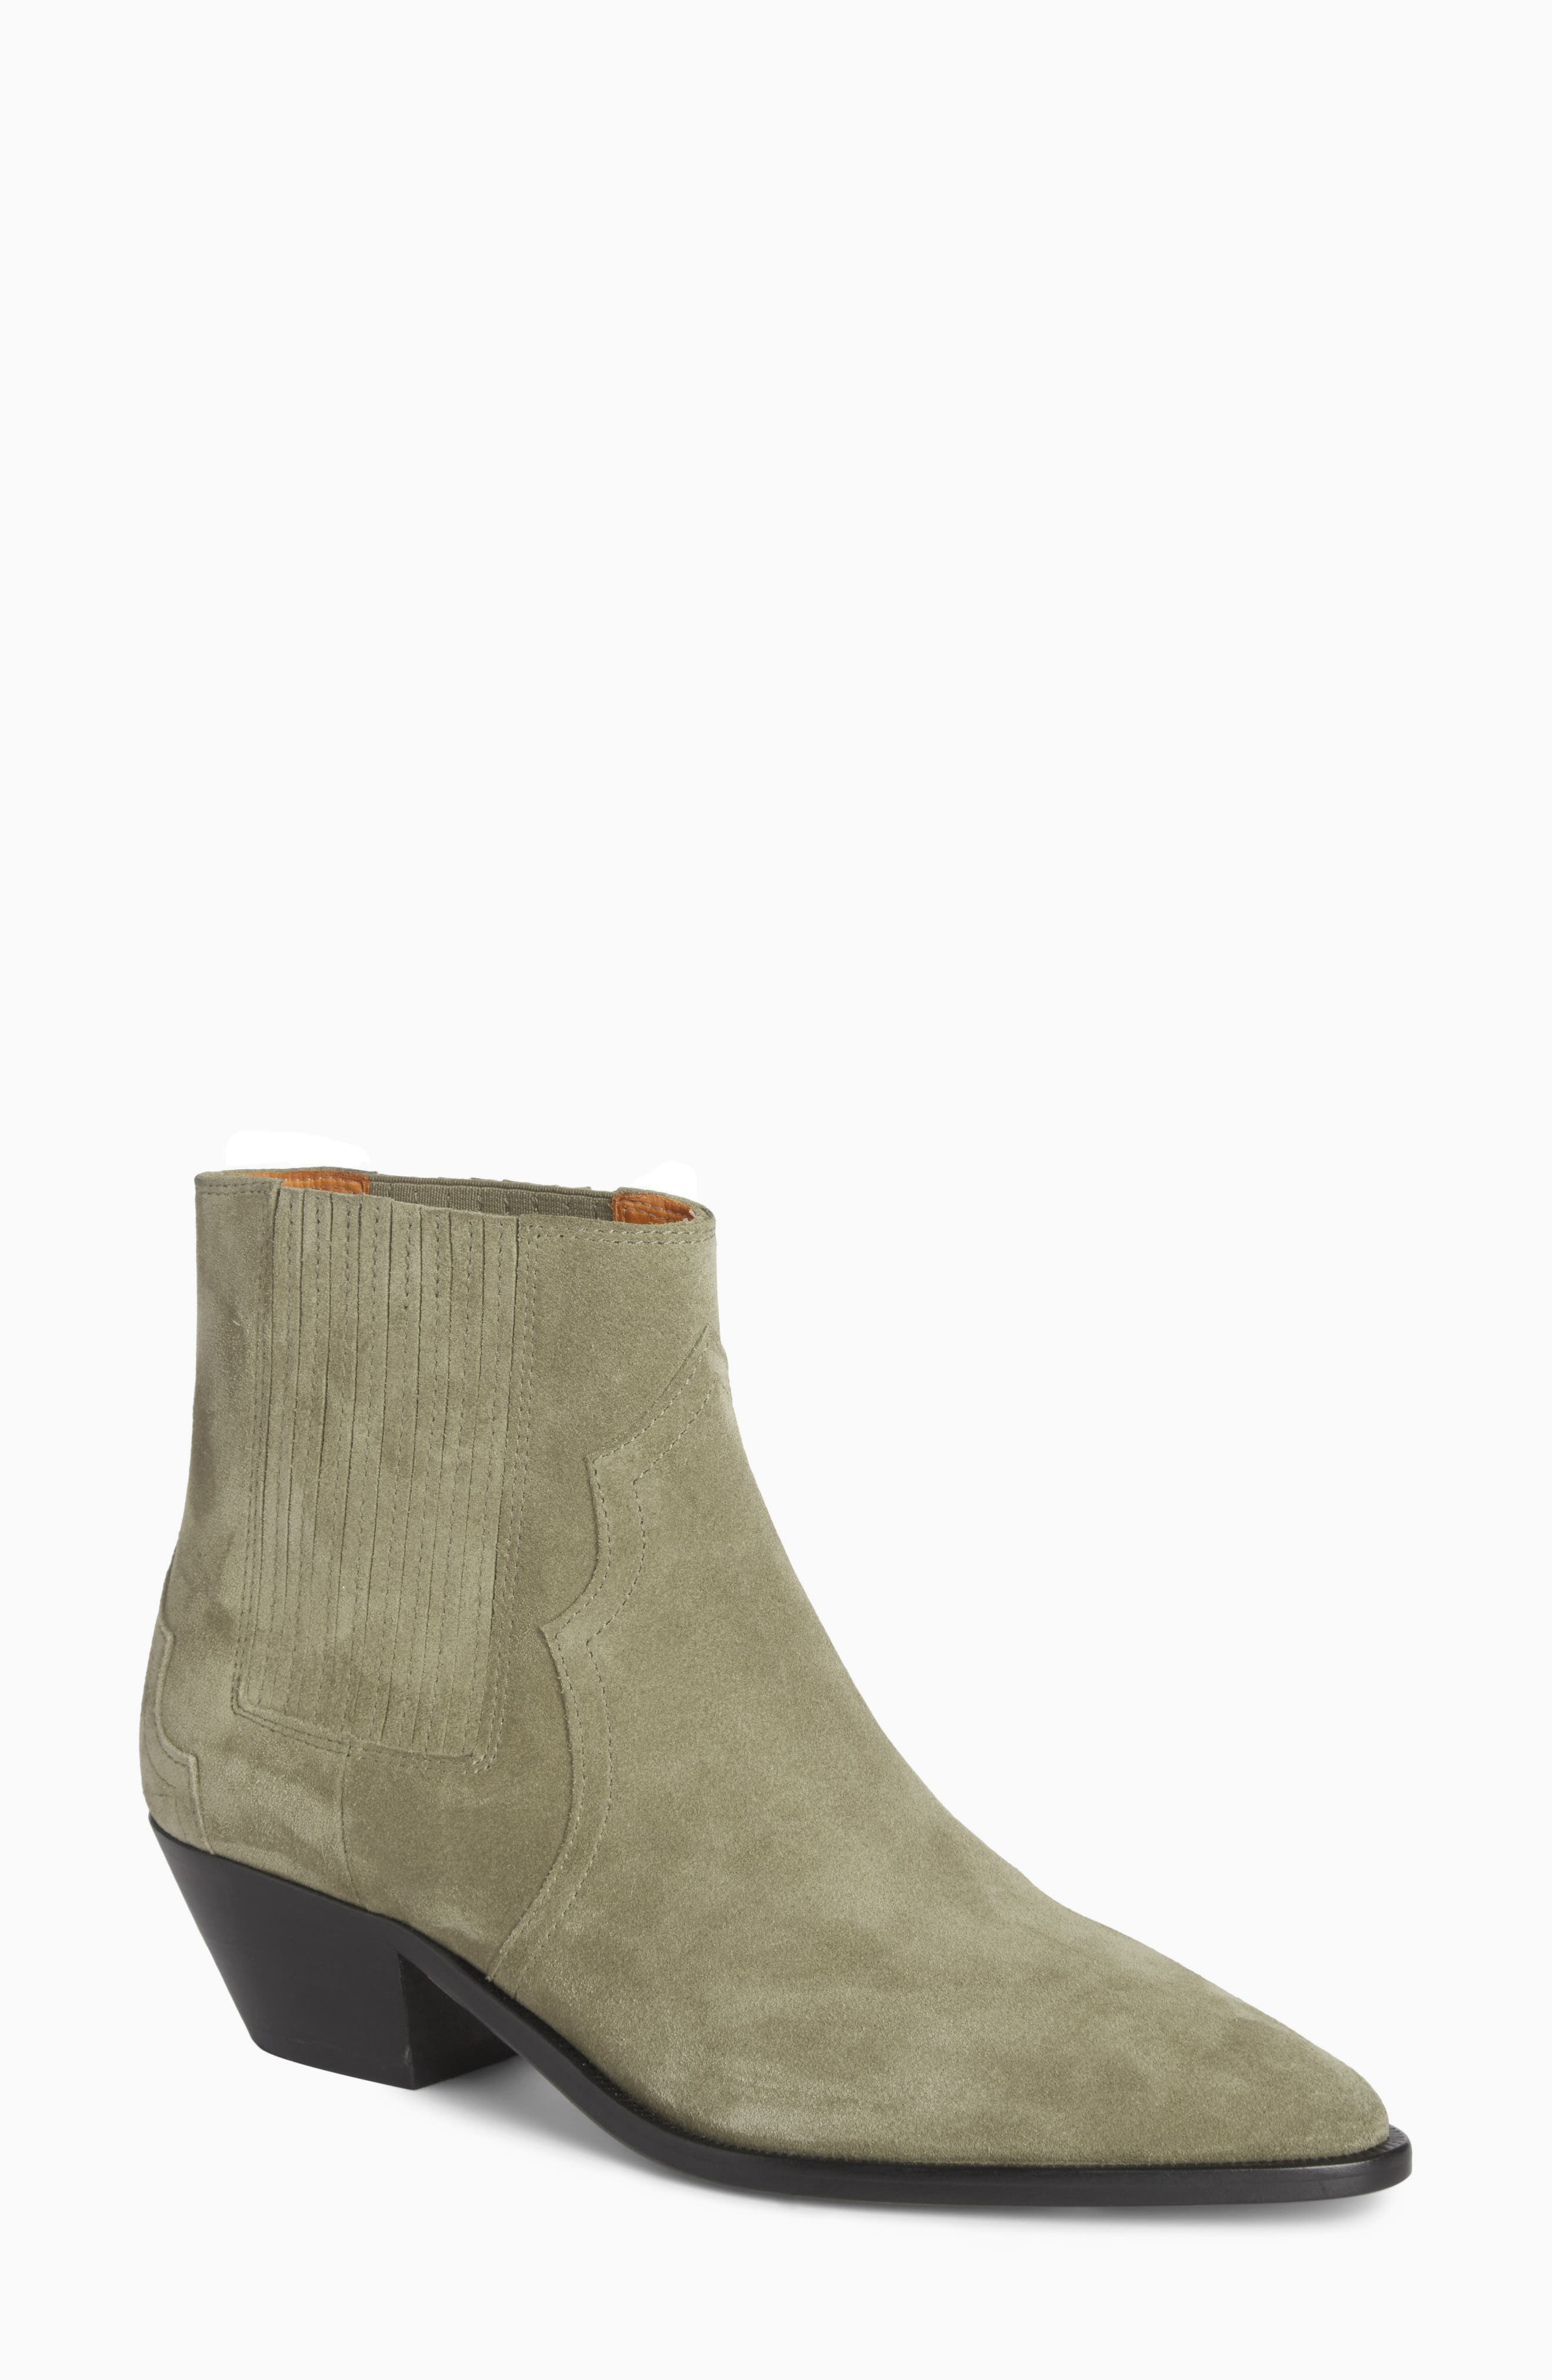 Derlyn Pointy Toe Boot,                             Main thumbnail 1, color,                             300